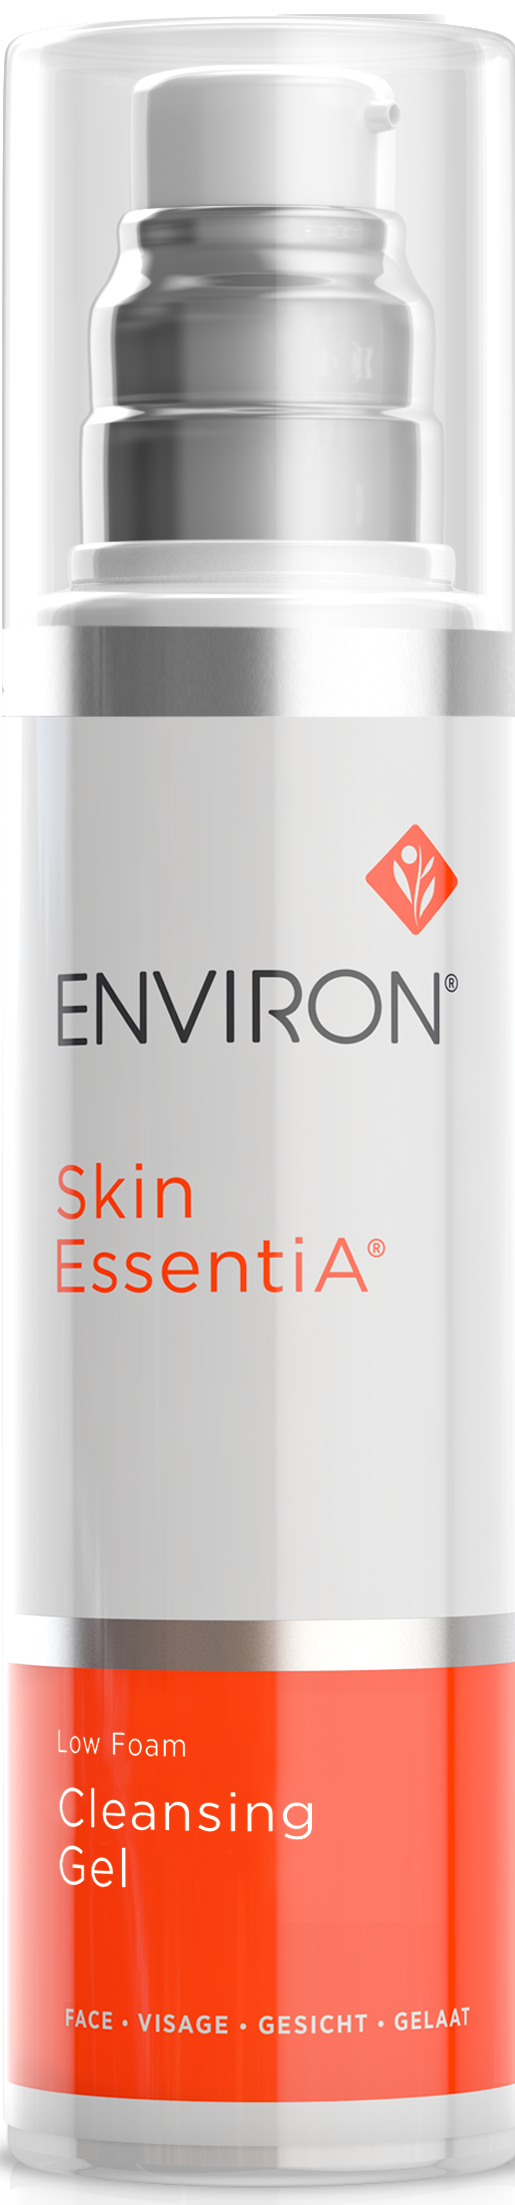 Skin EssentiA Low Foam Cleansing Gel Environ